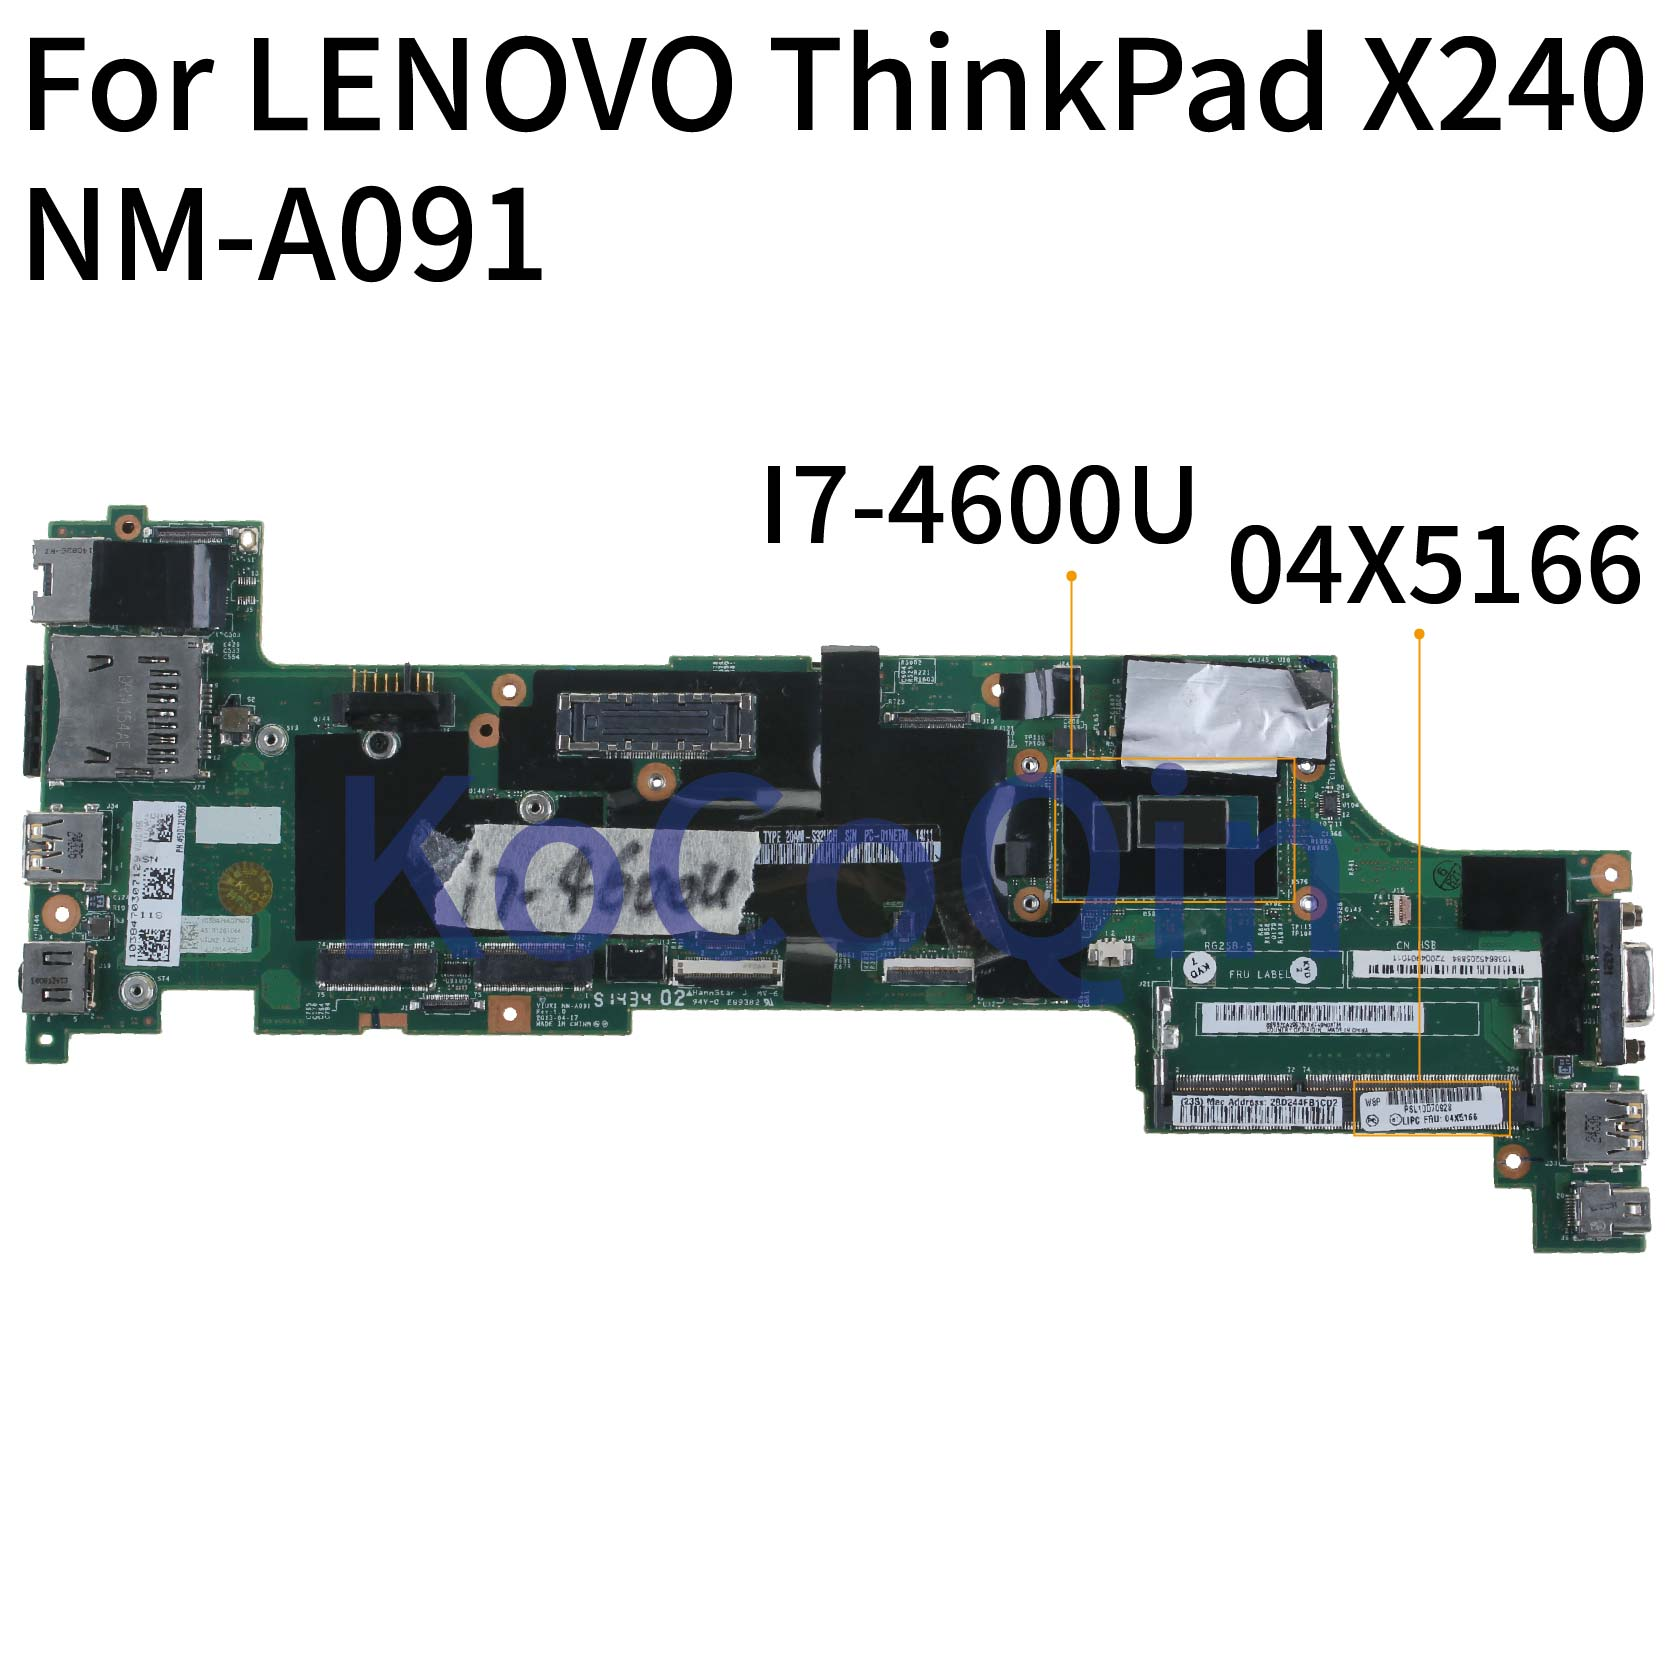 KoCoQin Laptop motherboard For LENOVO ThinkPad X240 <font><b>I7</b></font>-<font><b>4600U</b></font> Mainboard 04X5166 04X5178 VIUX1 NM-A091 image